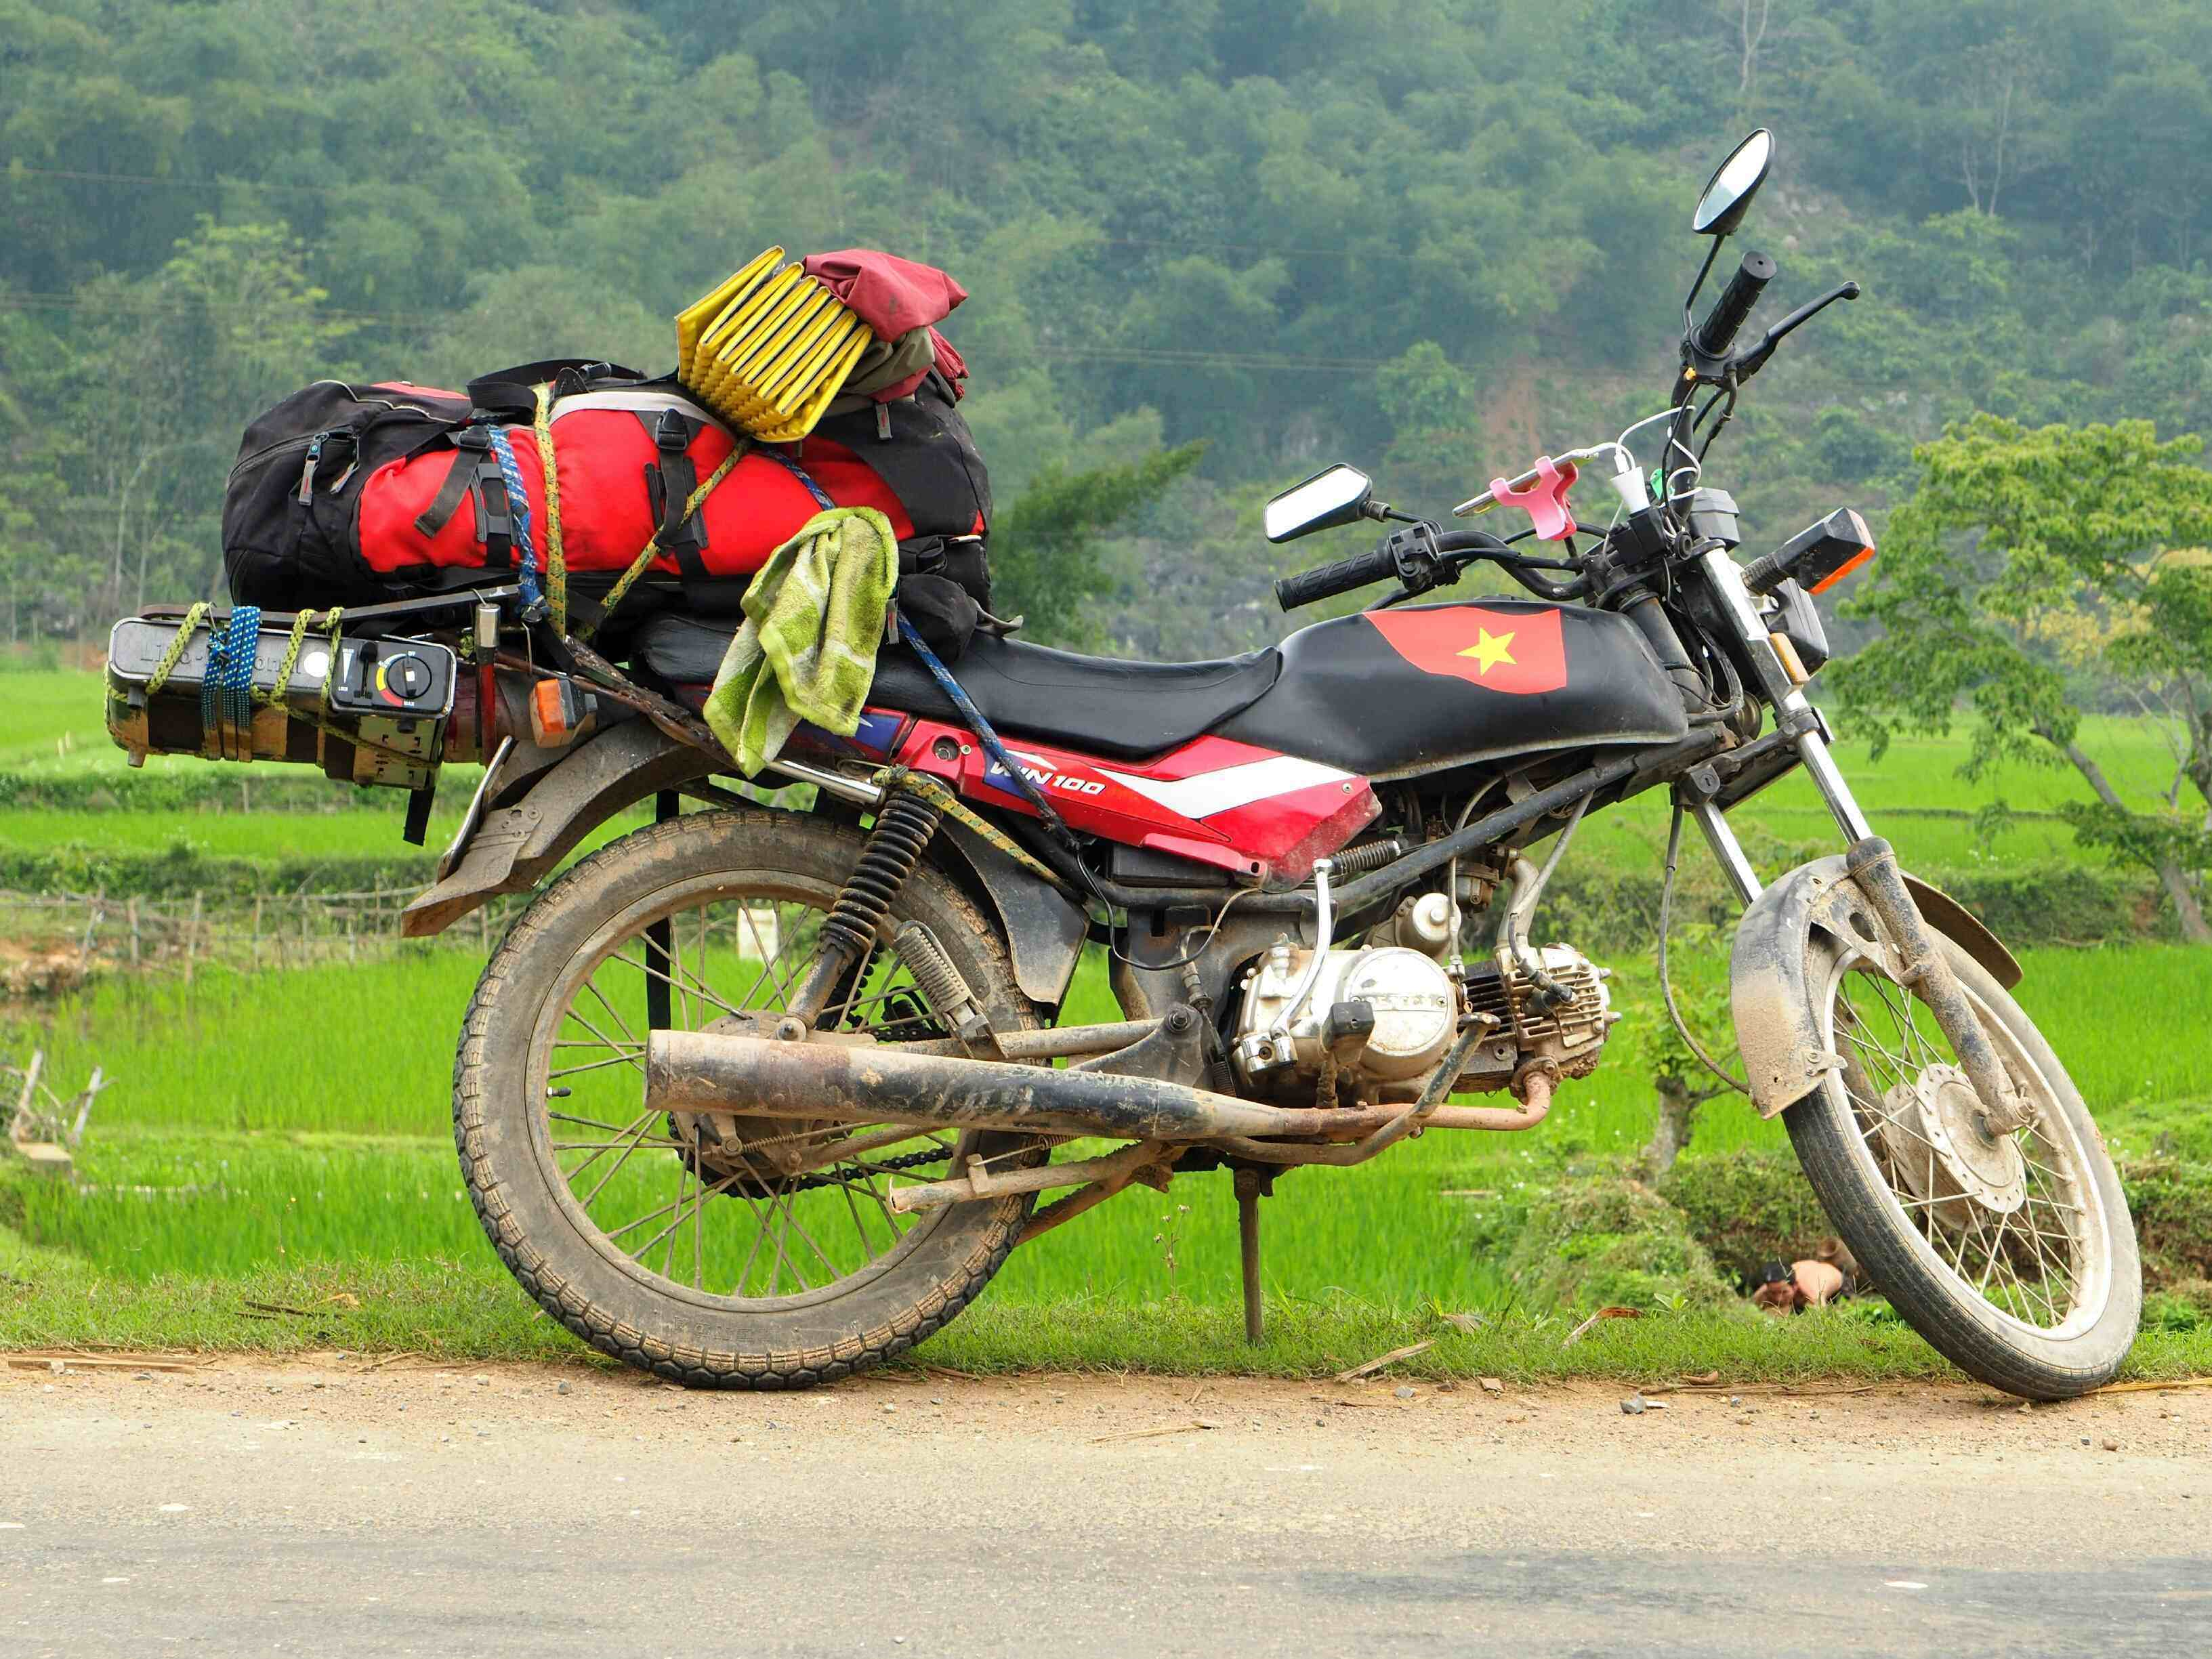 Rent a bike for month in bangalore dating 10